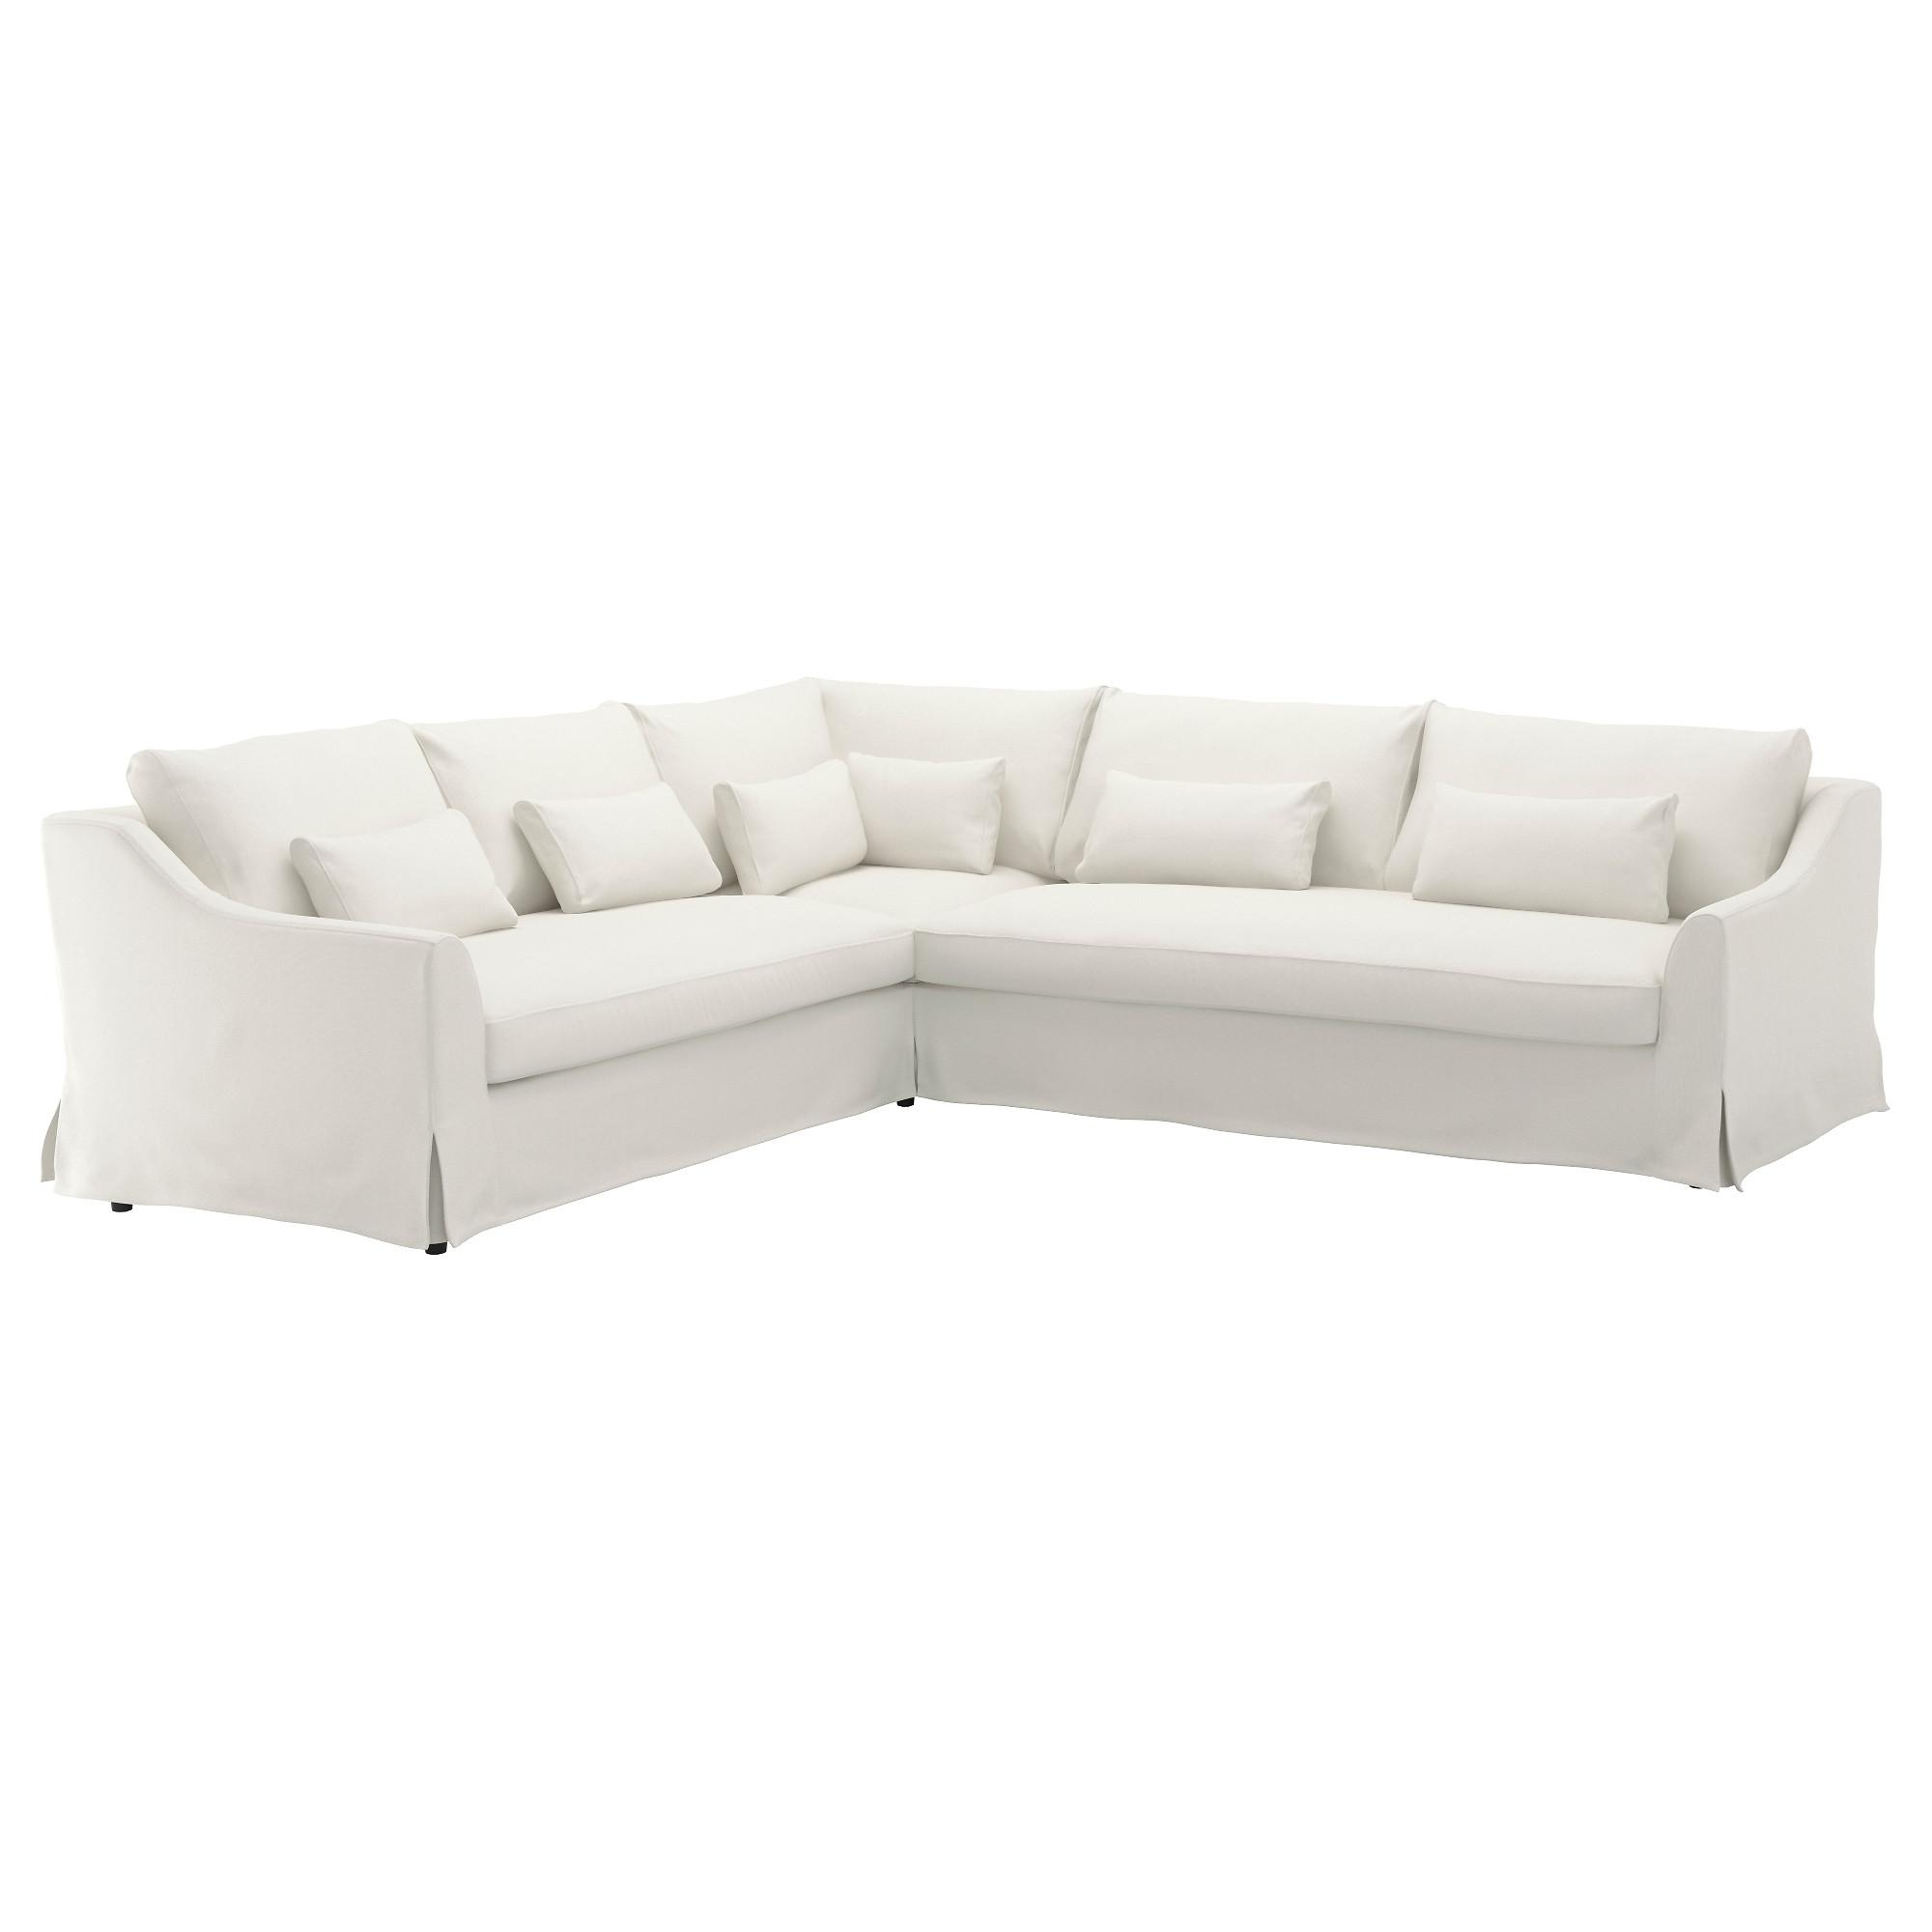 Fabric Sectional Sofas – Ikea Within Furniture Sectionals Ikea (Image 4 of 15)